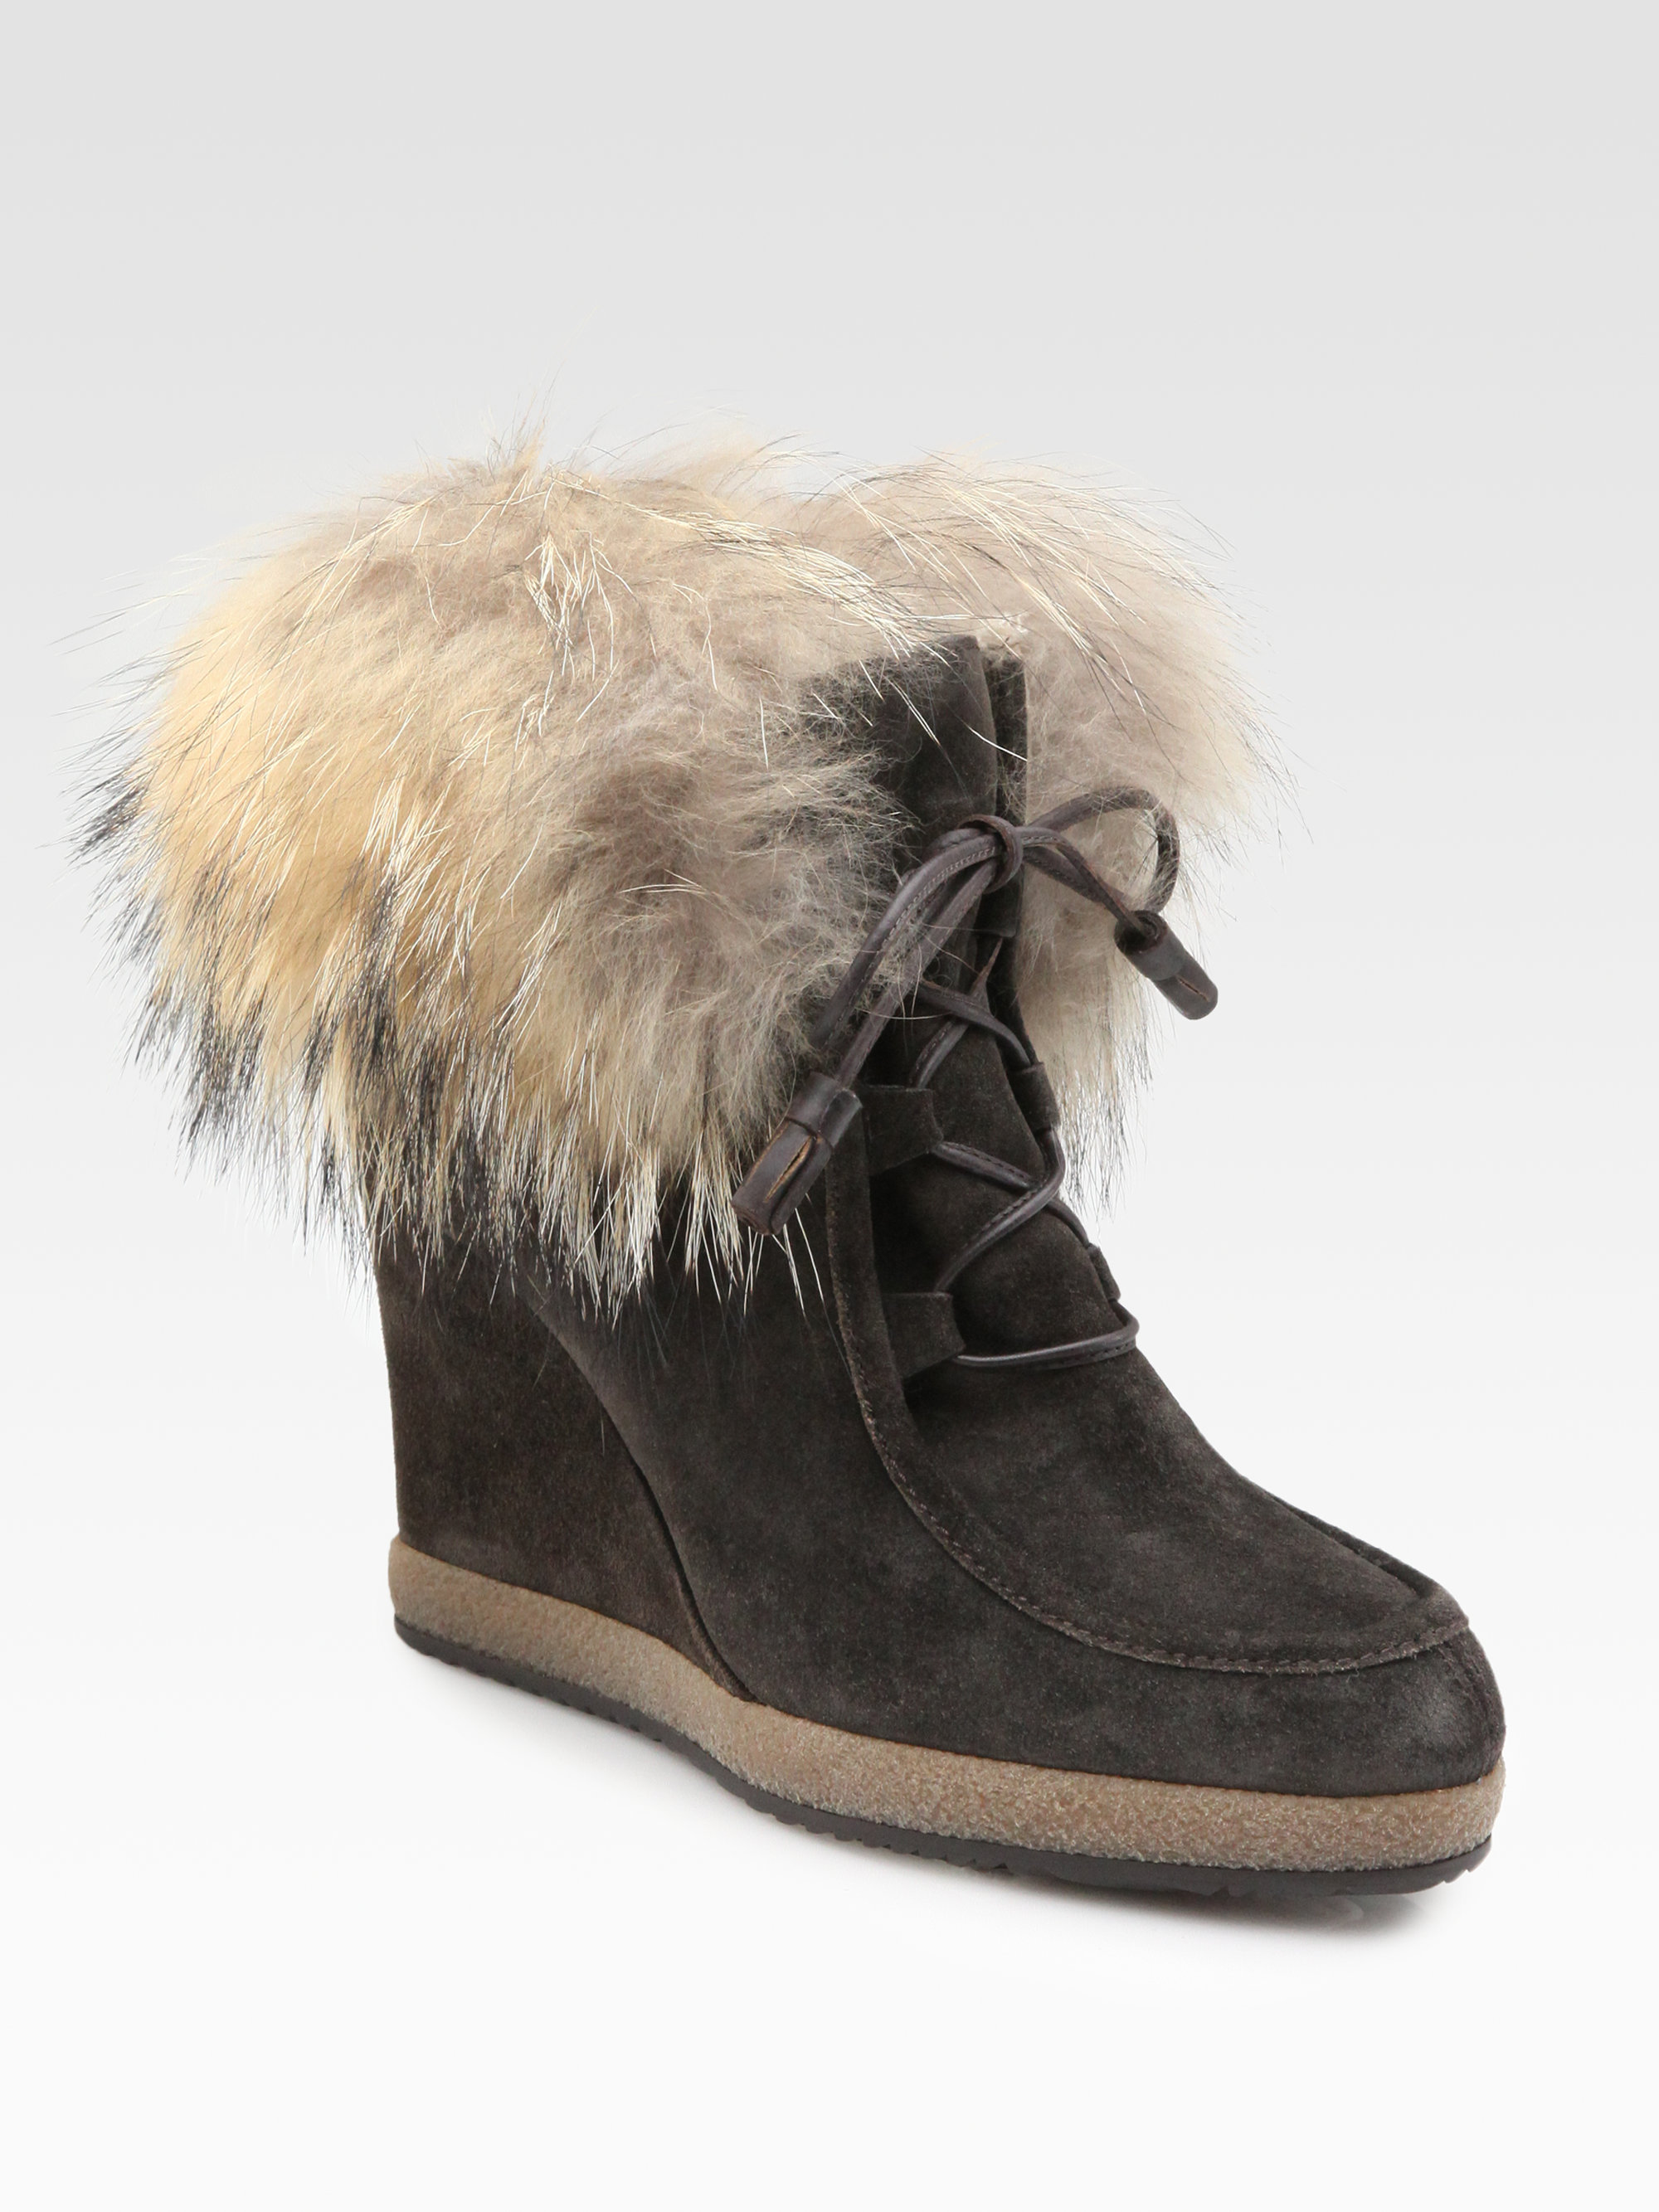 cheap sale exclusive Moncler Shearling-Lined Wedge Booties buy cheap looking for manchester great sale for sale jXn18gc